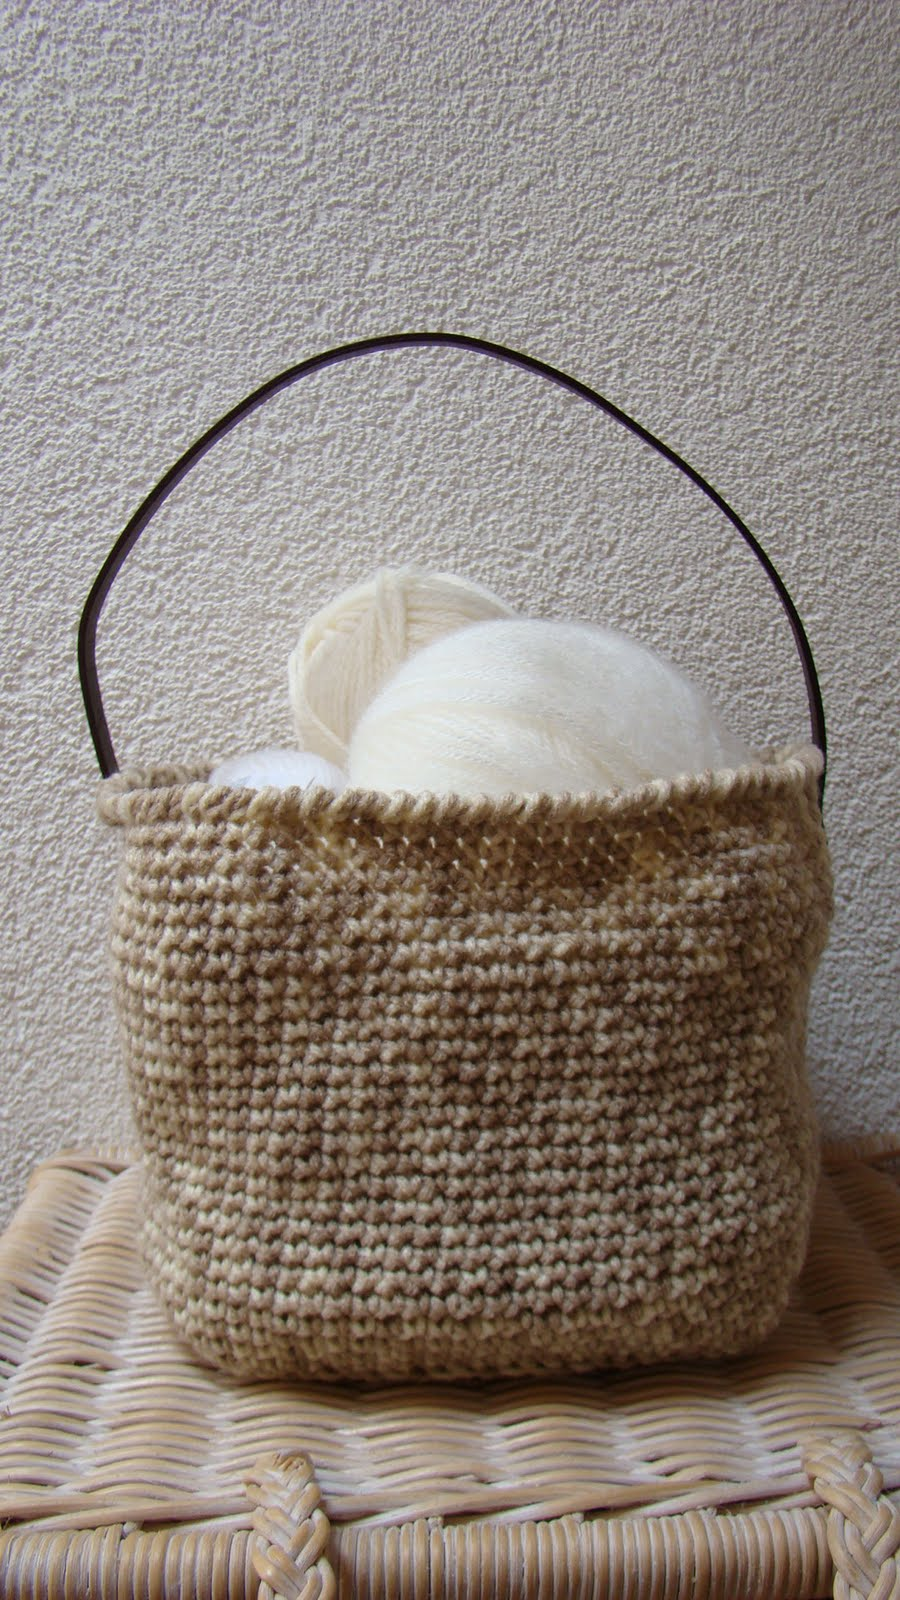 Crocheting Baskets : Roving Around Crafts: Crocheted basket